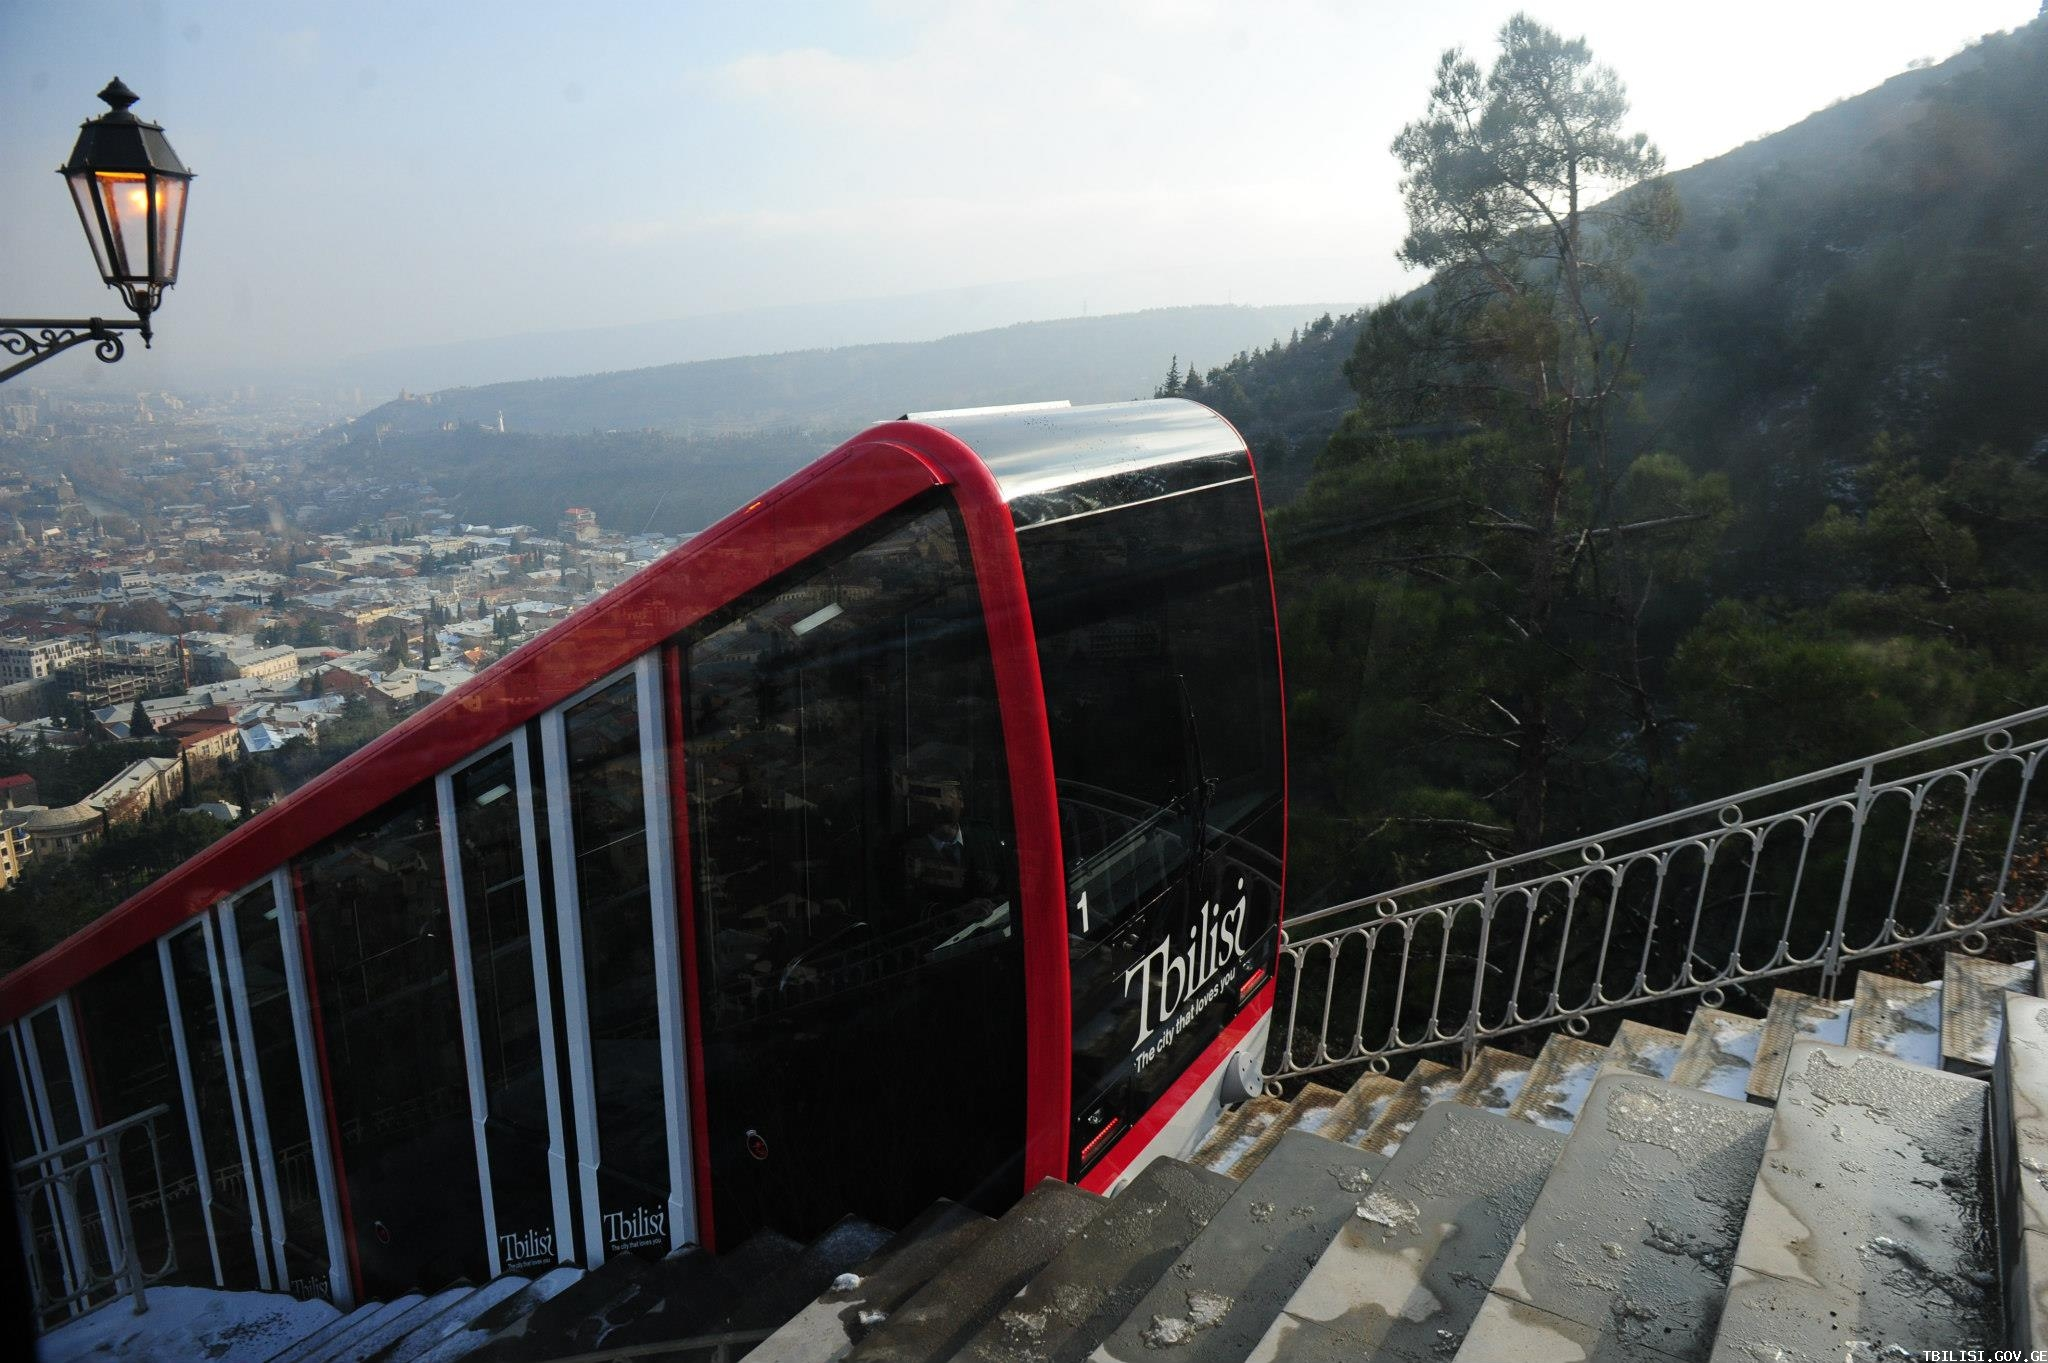 About sights tbilisi funicular railway georgia about for How to become a builder in ga